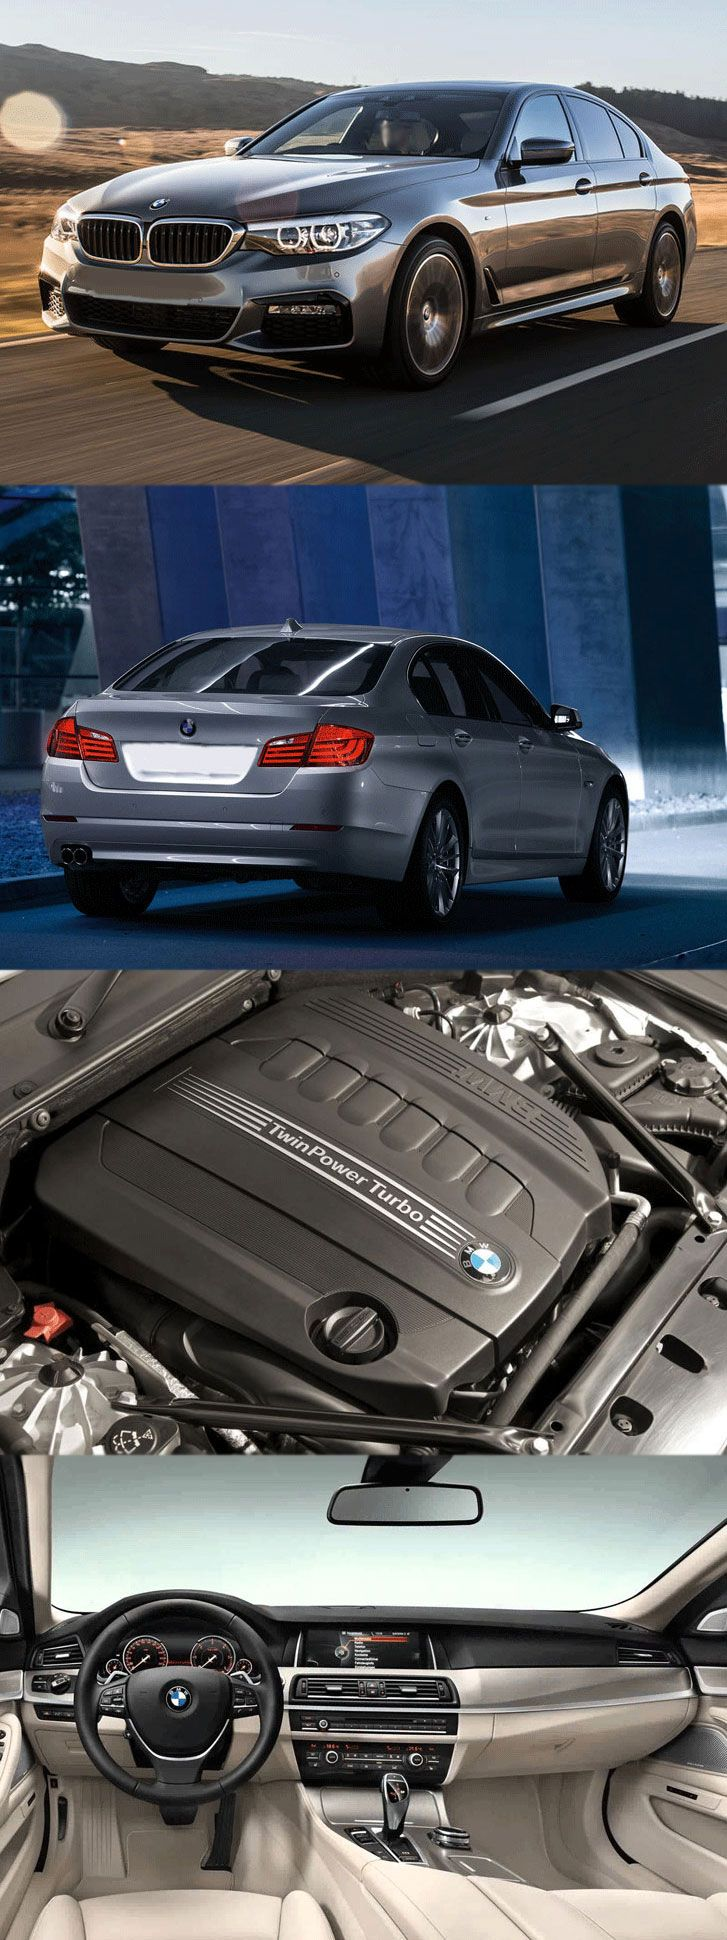 GREAT CHANGES IN BMW 530 NEW MODEL Get more info: https://www.bmwengineworks.co.uk/blog/great-changes-bmw-530-new-model/